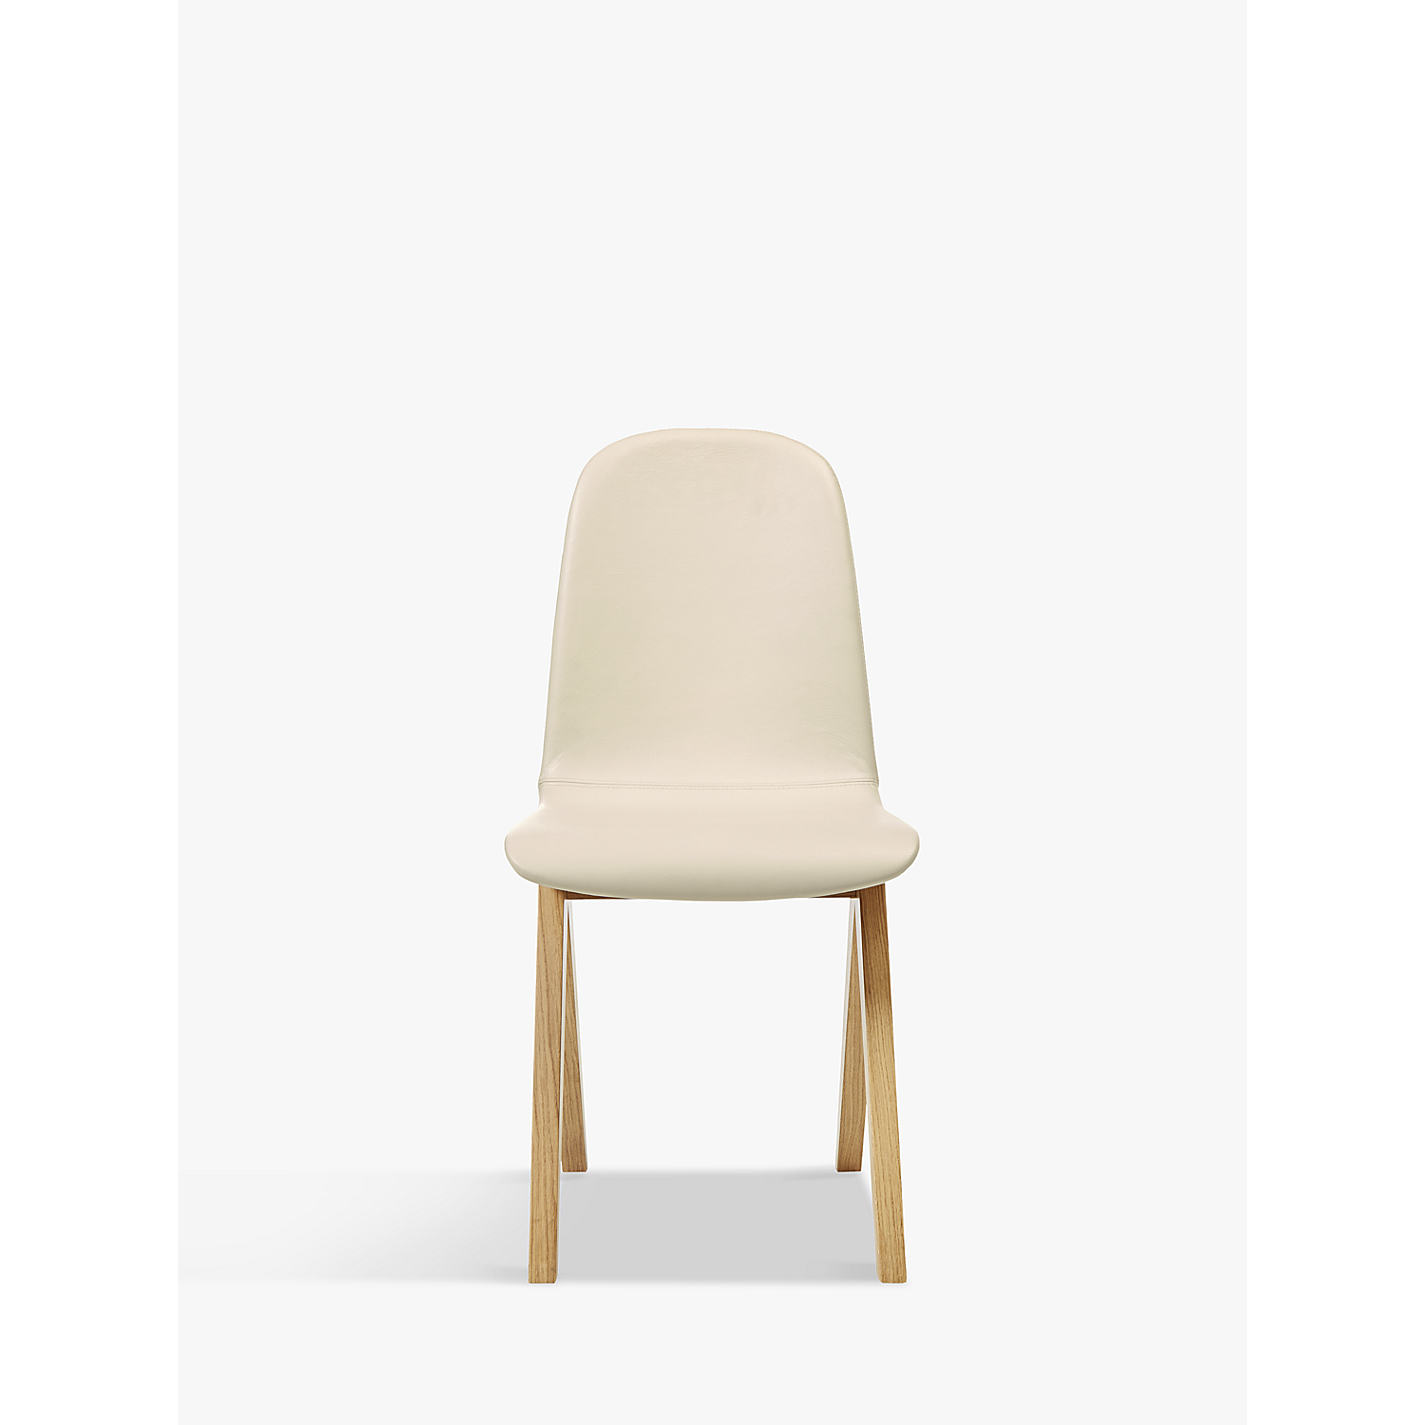 Buy Bethan Gray for John Lewis Newman Leather Upholstered Dining